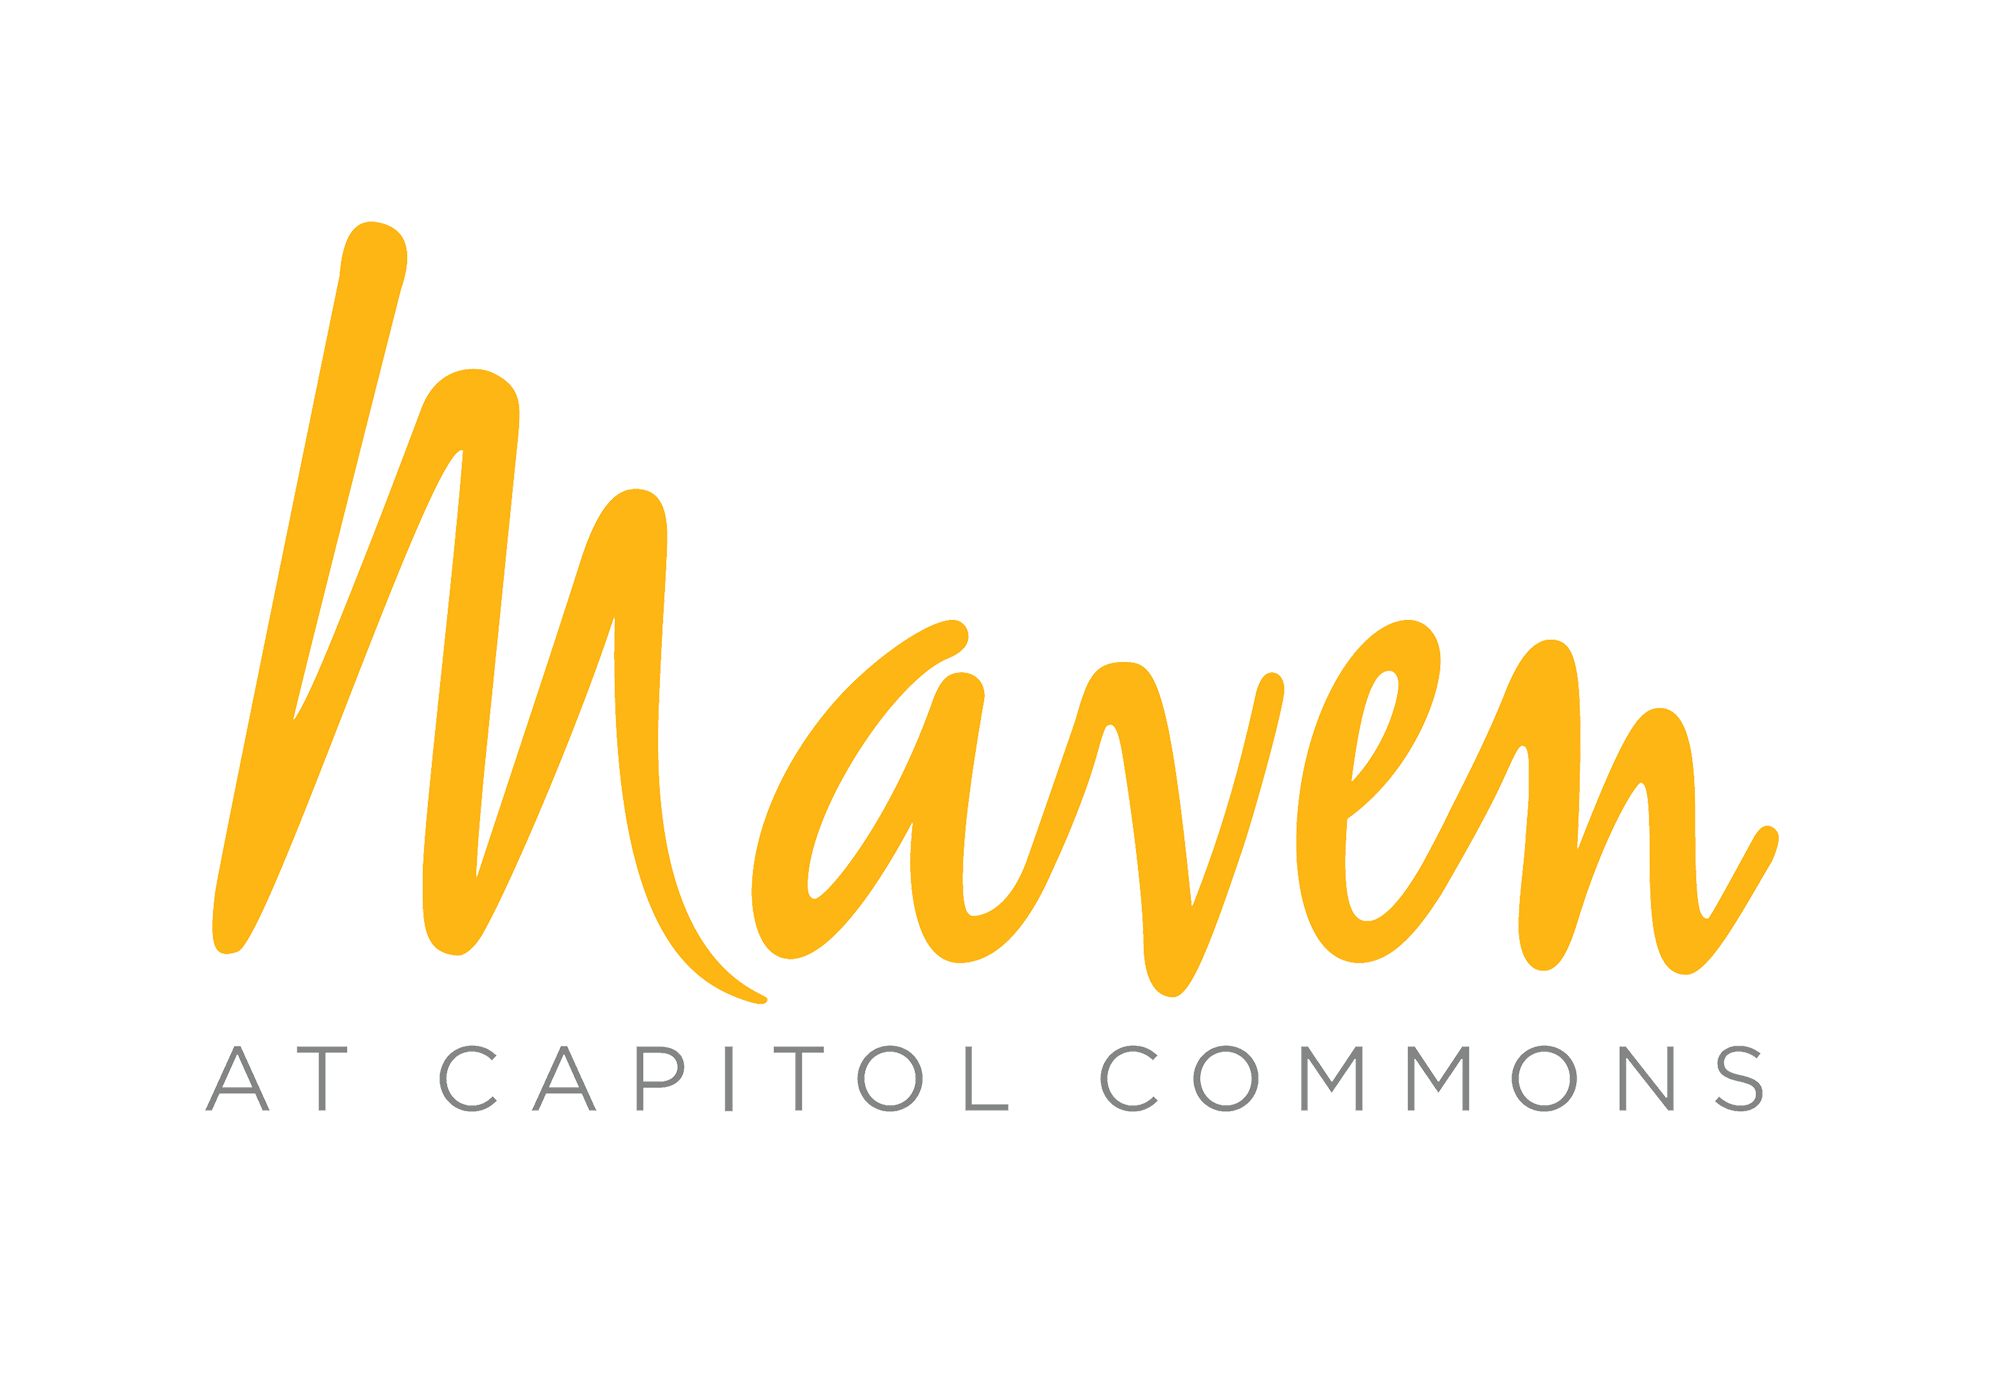 Logo of Maven at Capitol Commons